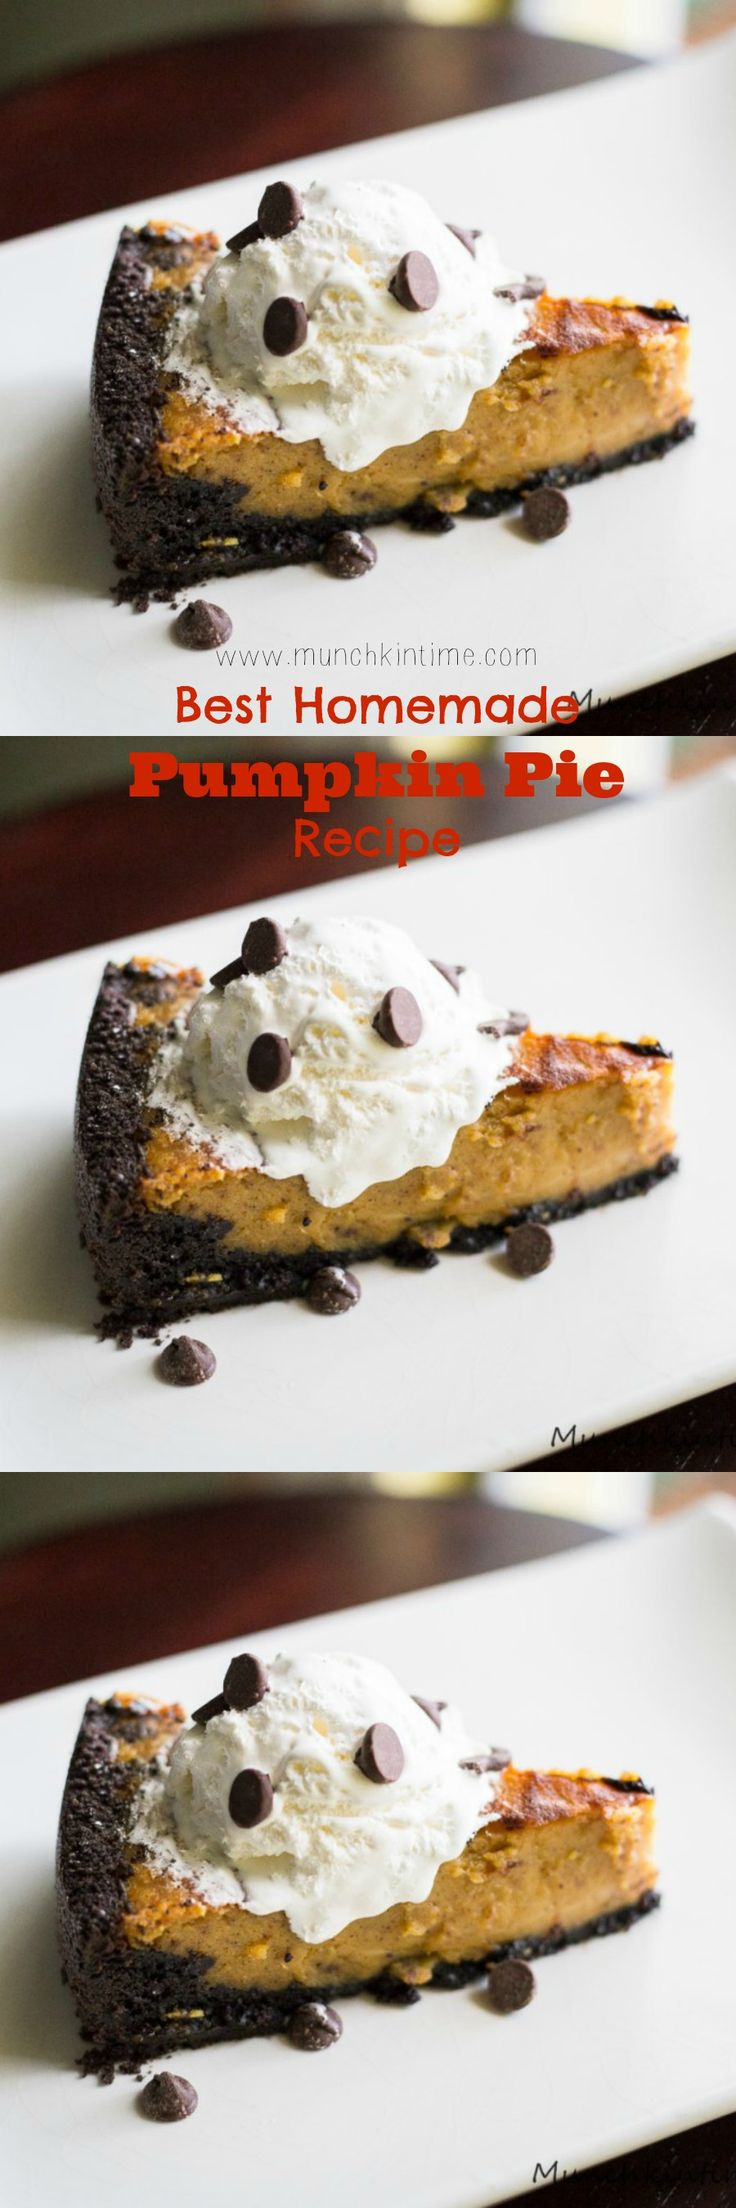 Best Homemade Pumpkin Pie Recipe Ever - Made of Oreo crust, fresh sugar pumpkin puree and topped with vanilla ice cream it will be the best pumpkin pie recipe you will ever tried.